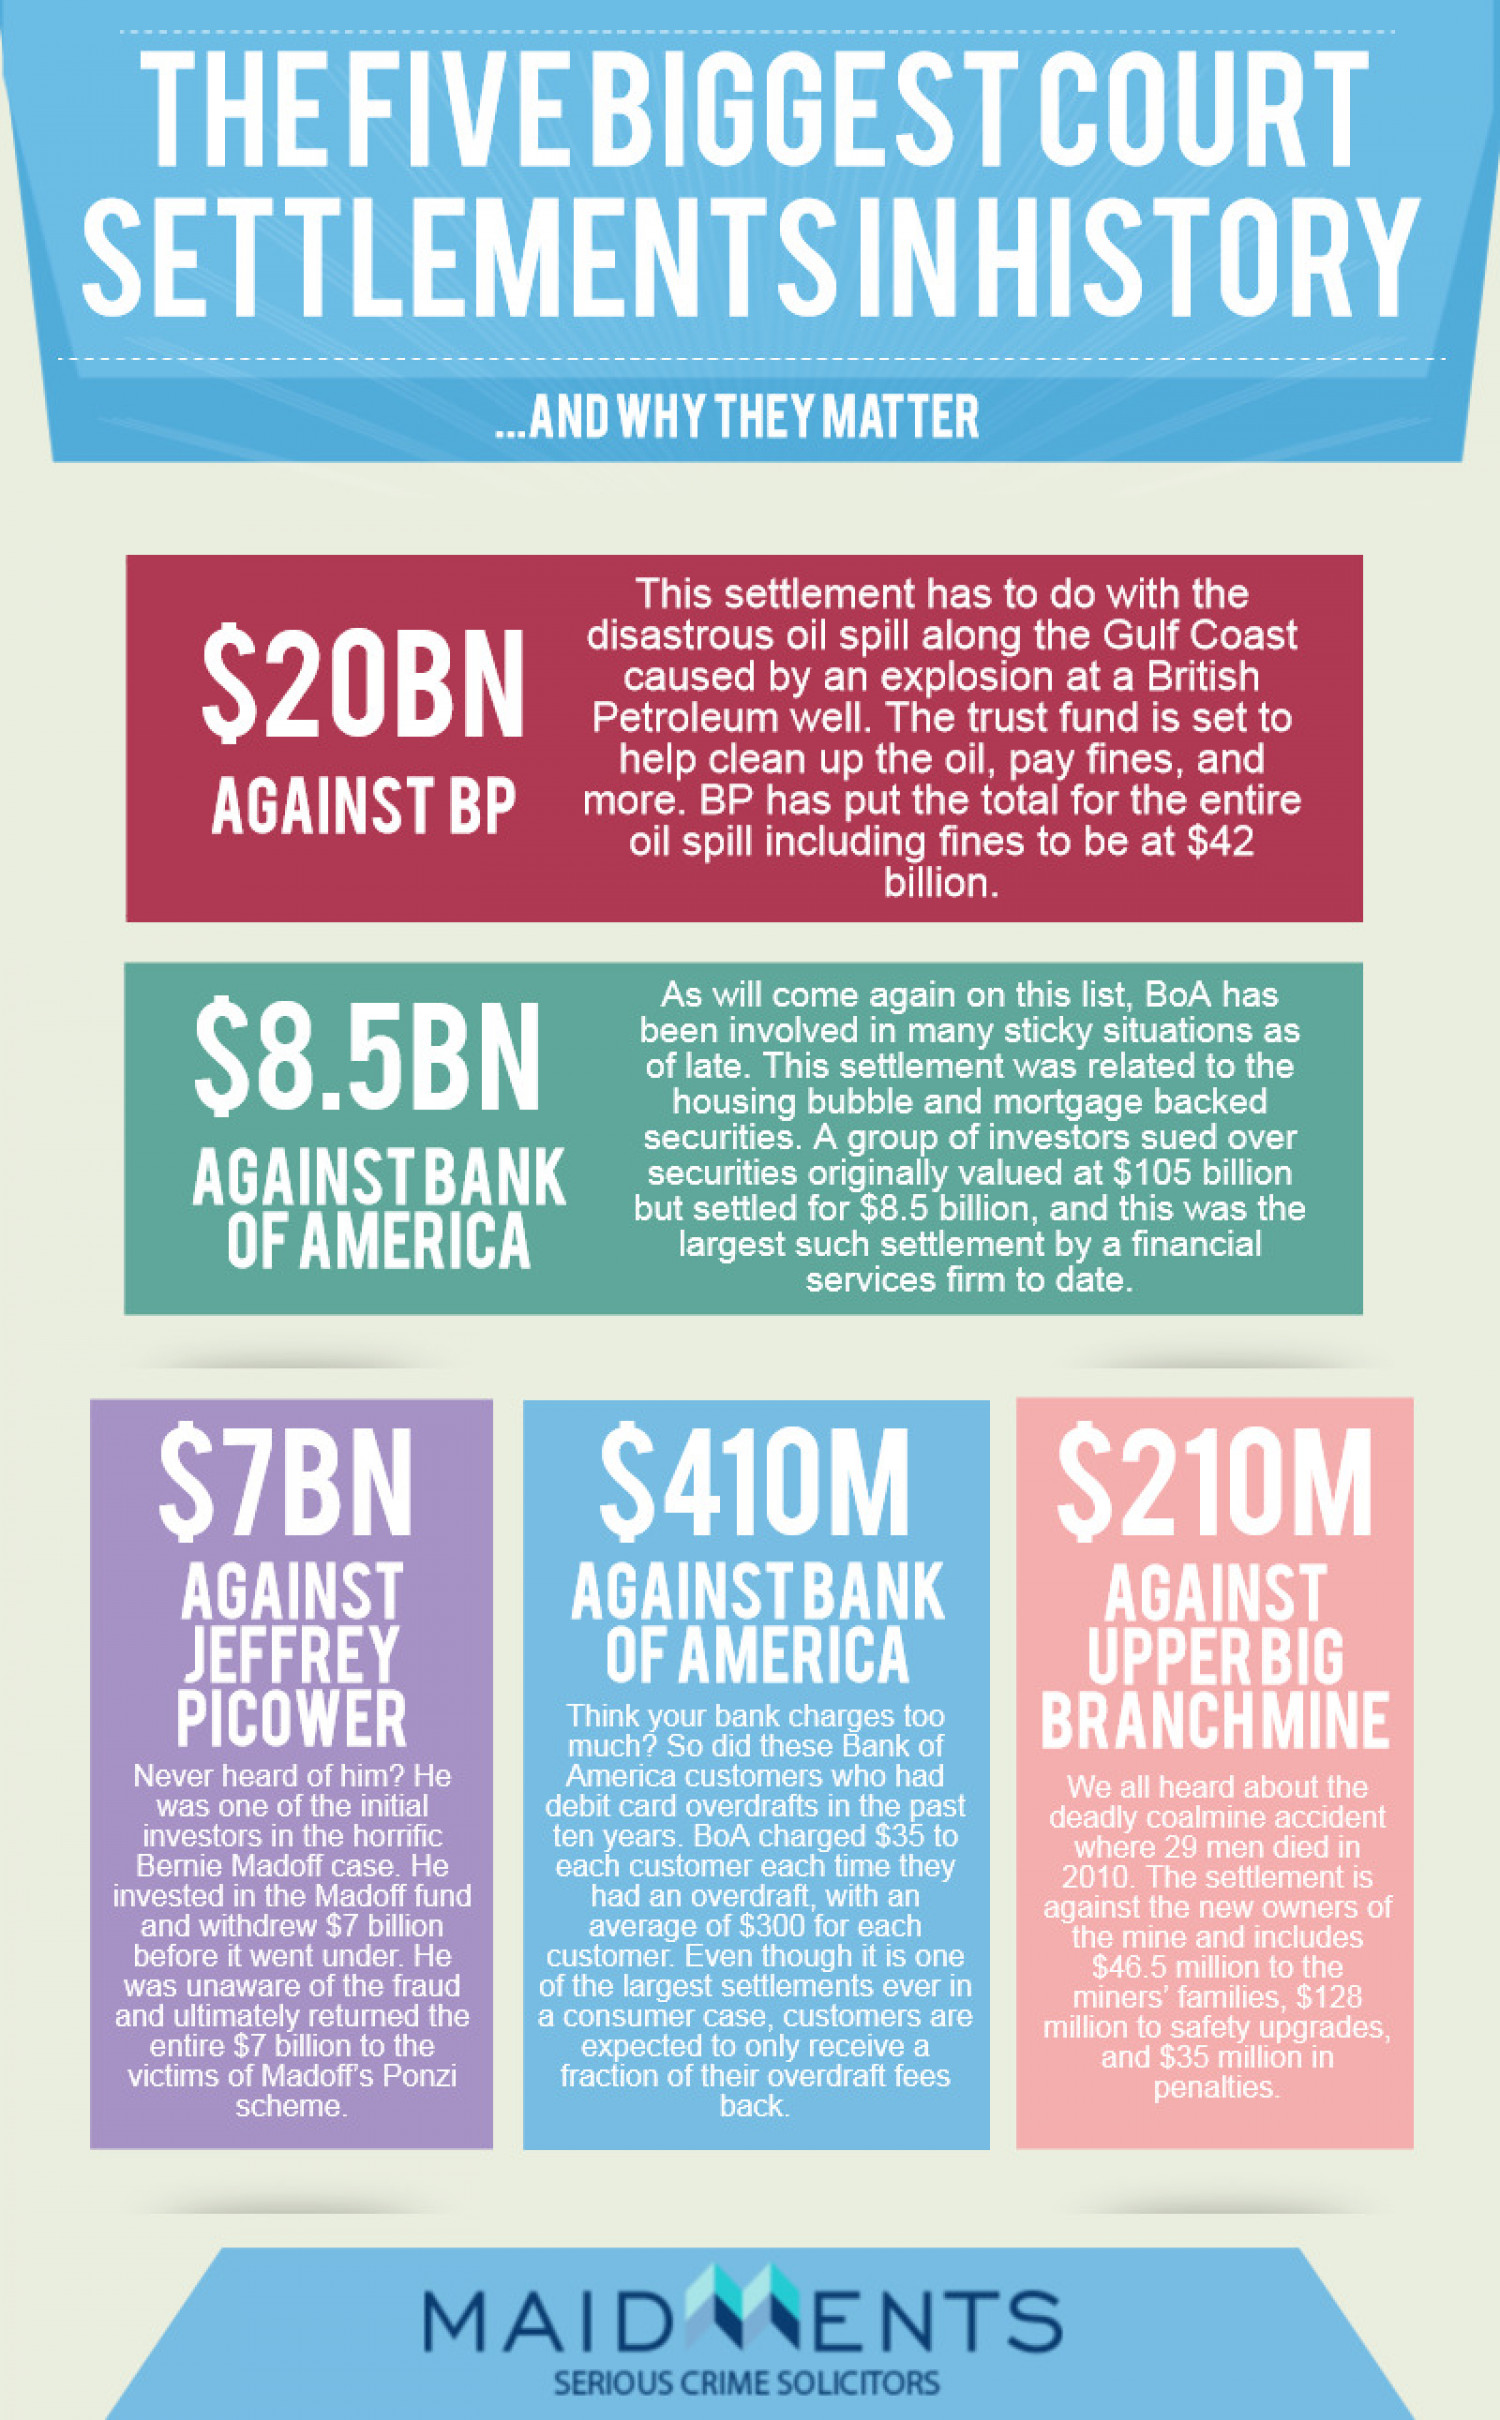 The Five Biggest Court Settlements in History Infographic